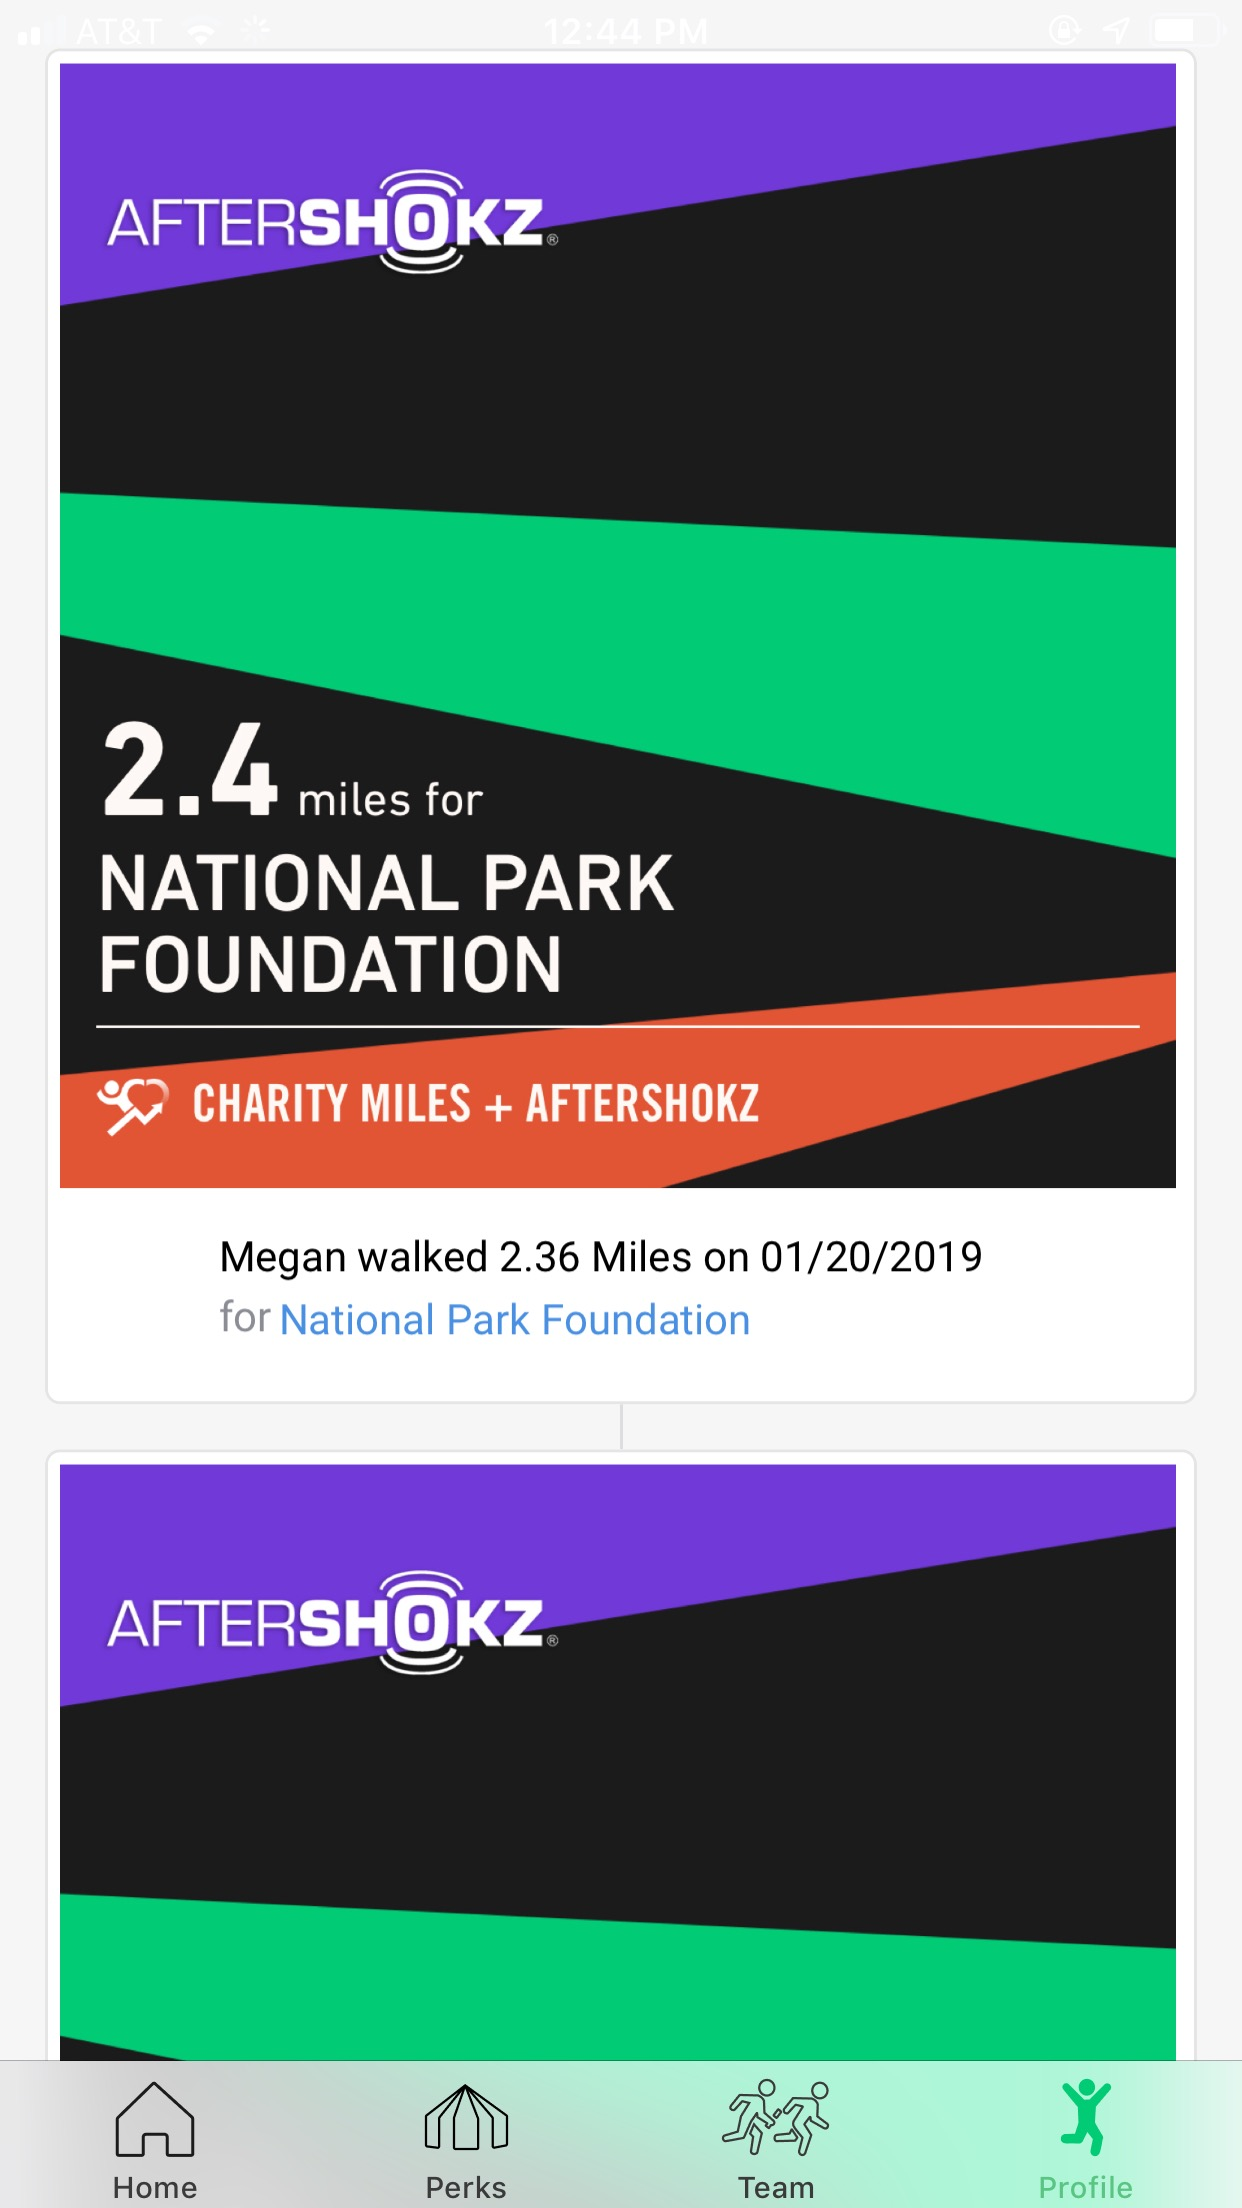 Charity Miles tracks your daily workouts, donating $0.25 per mile for walking or running and $0.10 per mile for biking, to a charity of your choice.